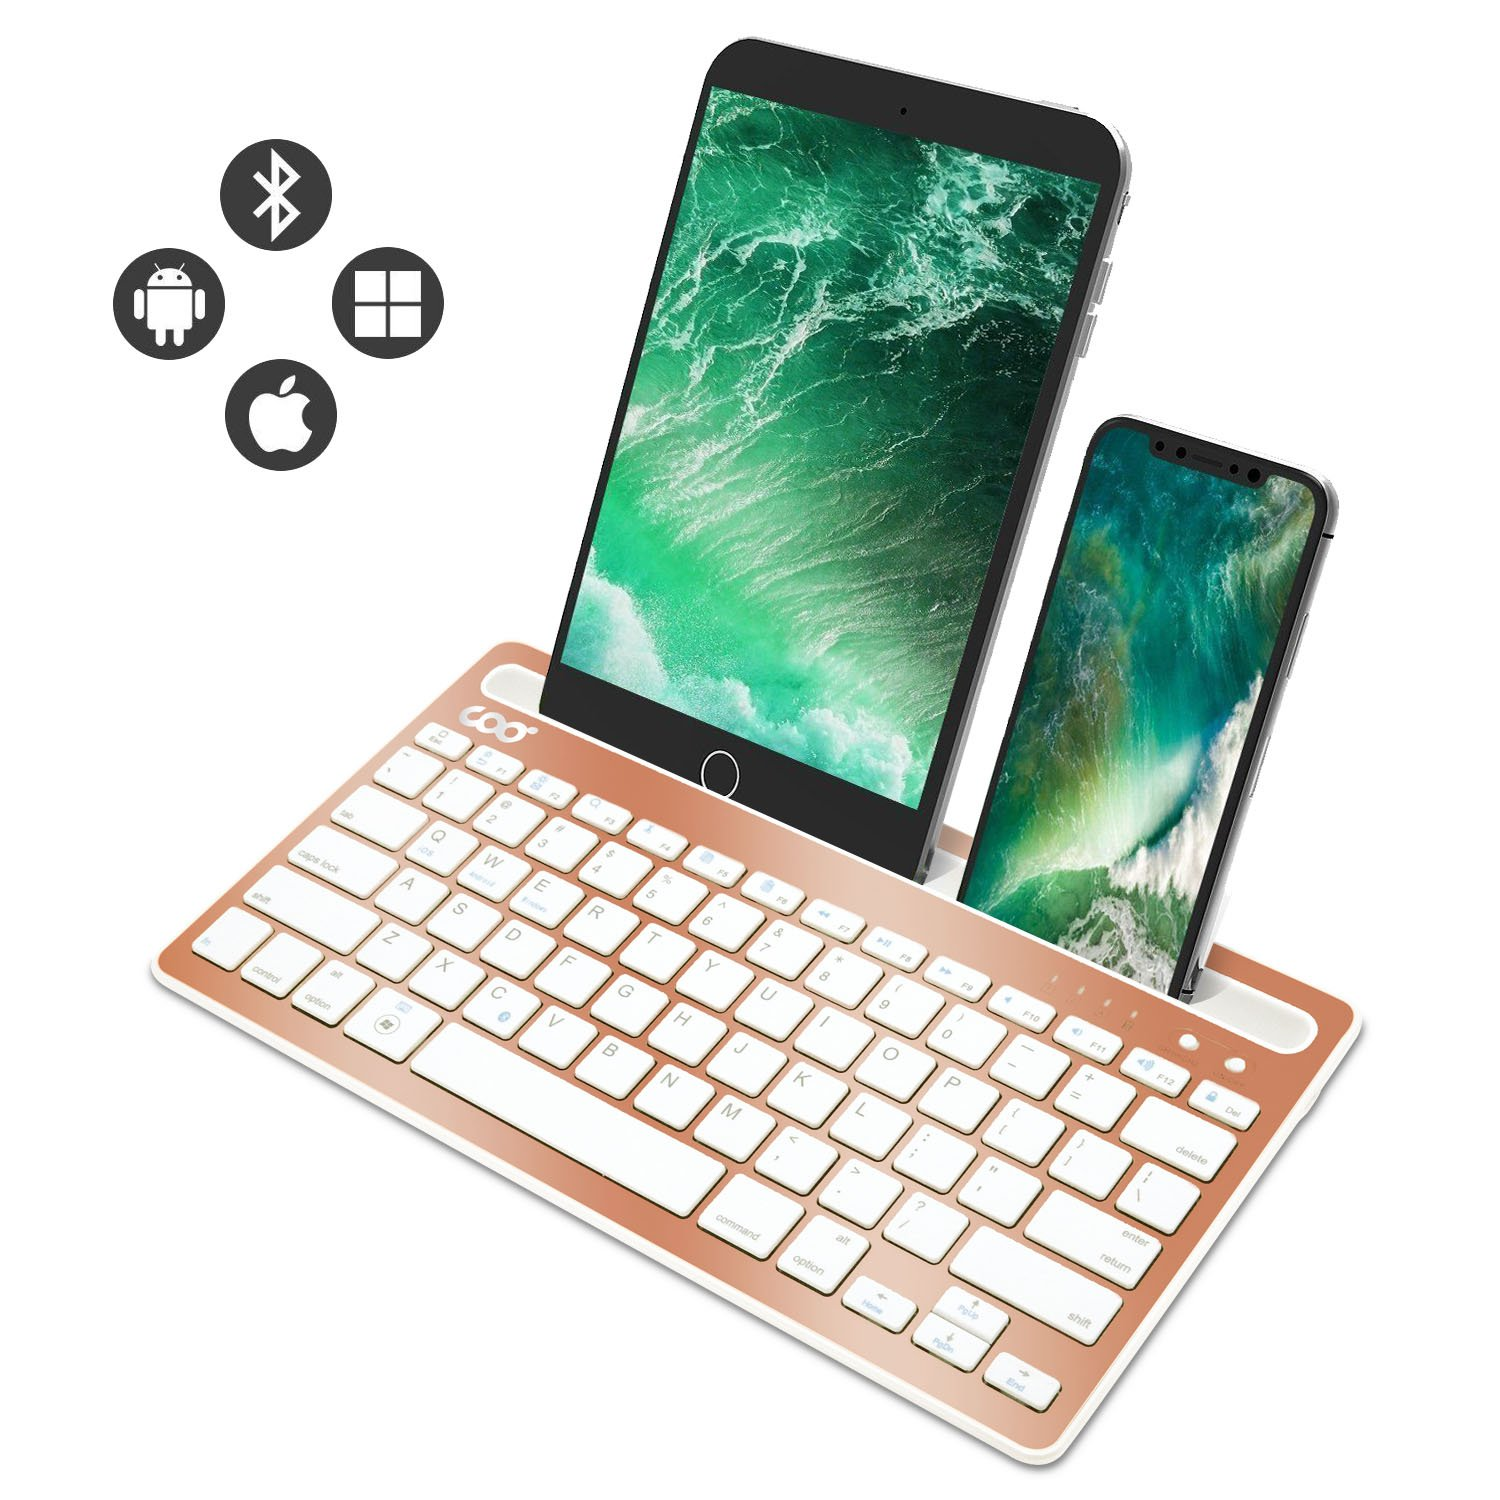 Bluetooth keyboard, Dual Channel Multi-device Universal Wireless Bluetooth Rechargeable Keyboard with Sturdy Stand for Tablet Smartphone PC Windows Android iOS Mac(Gold)